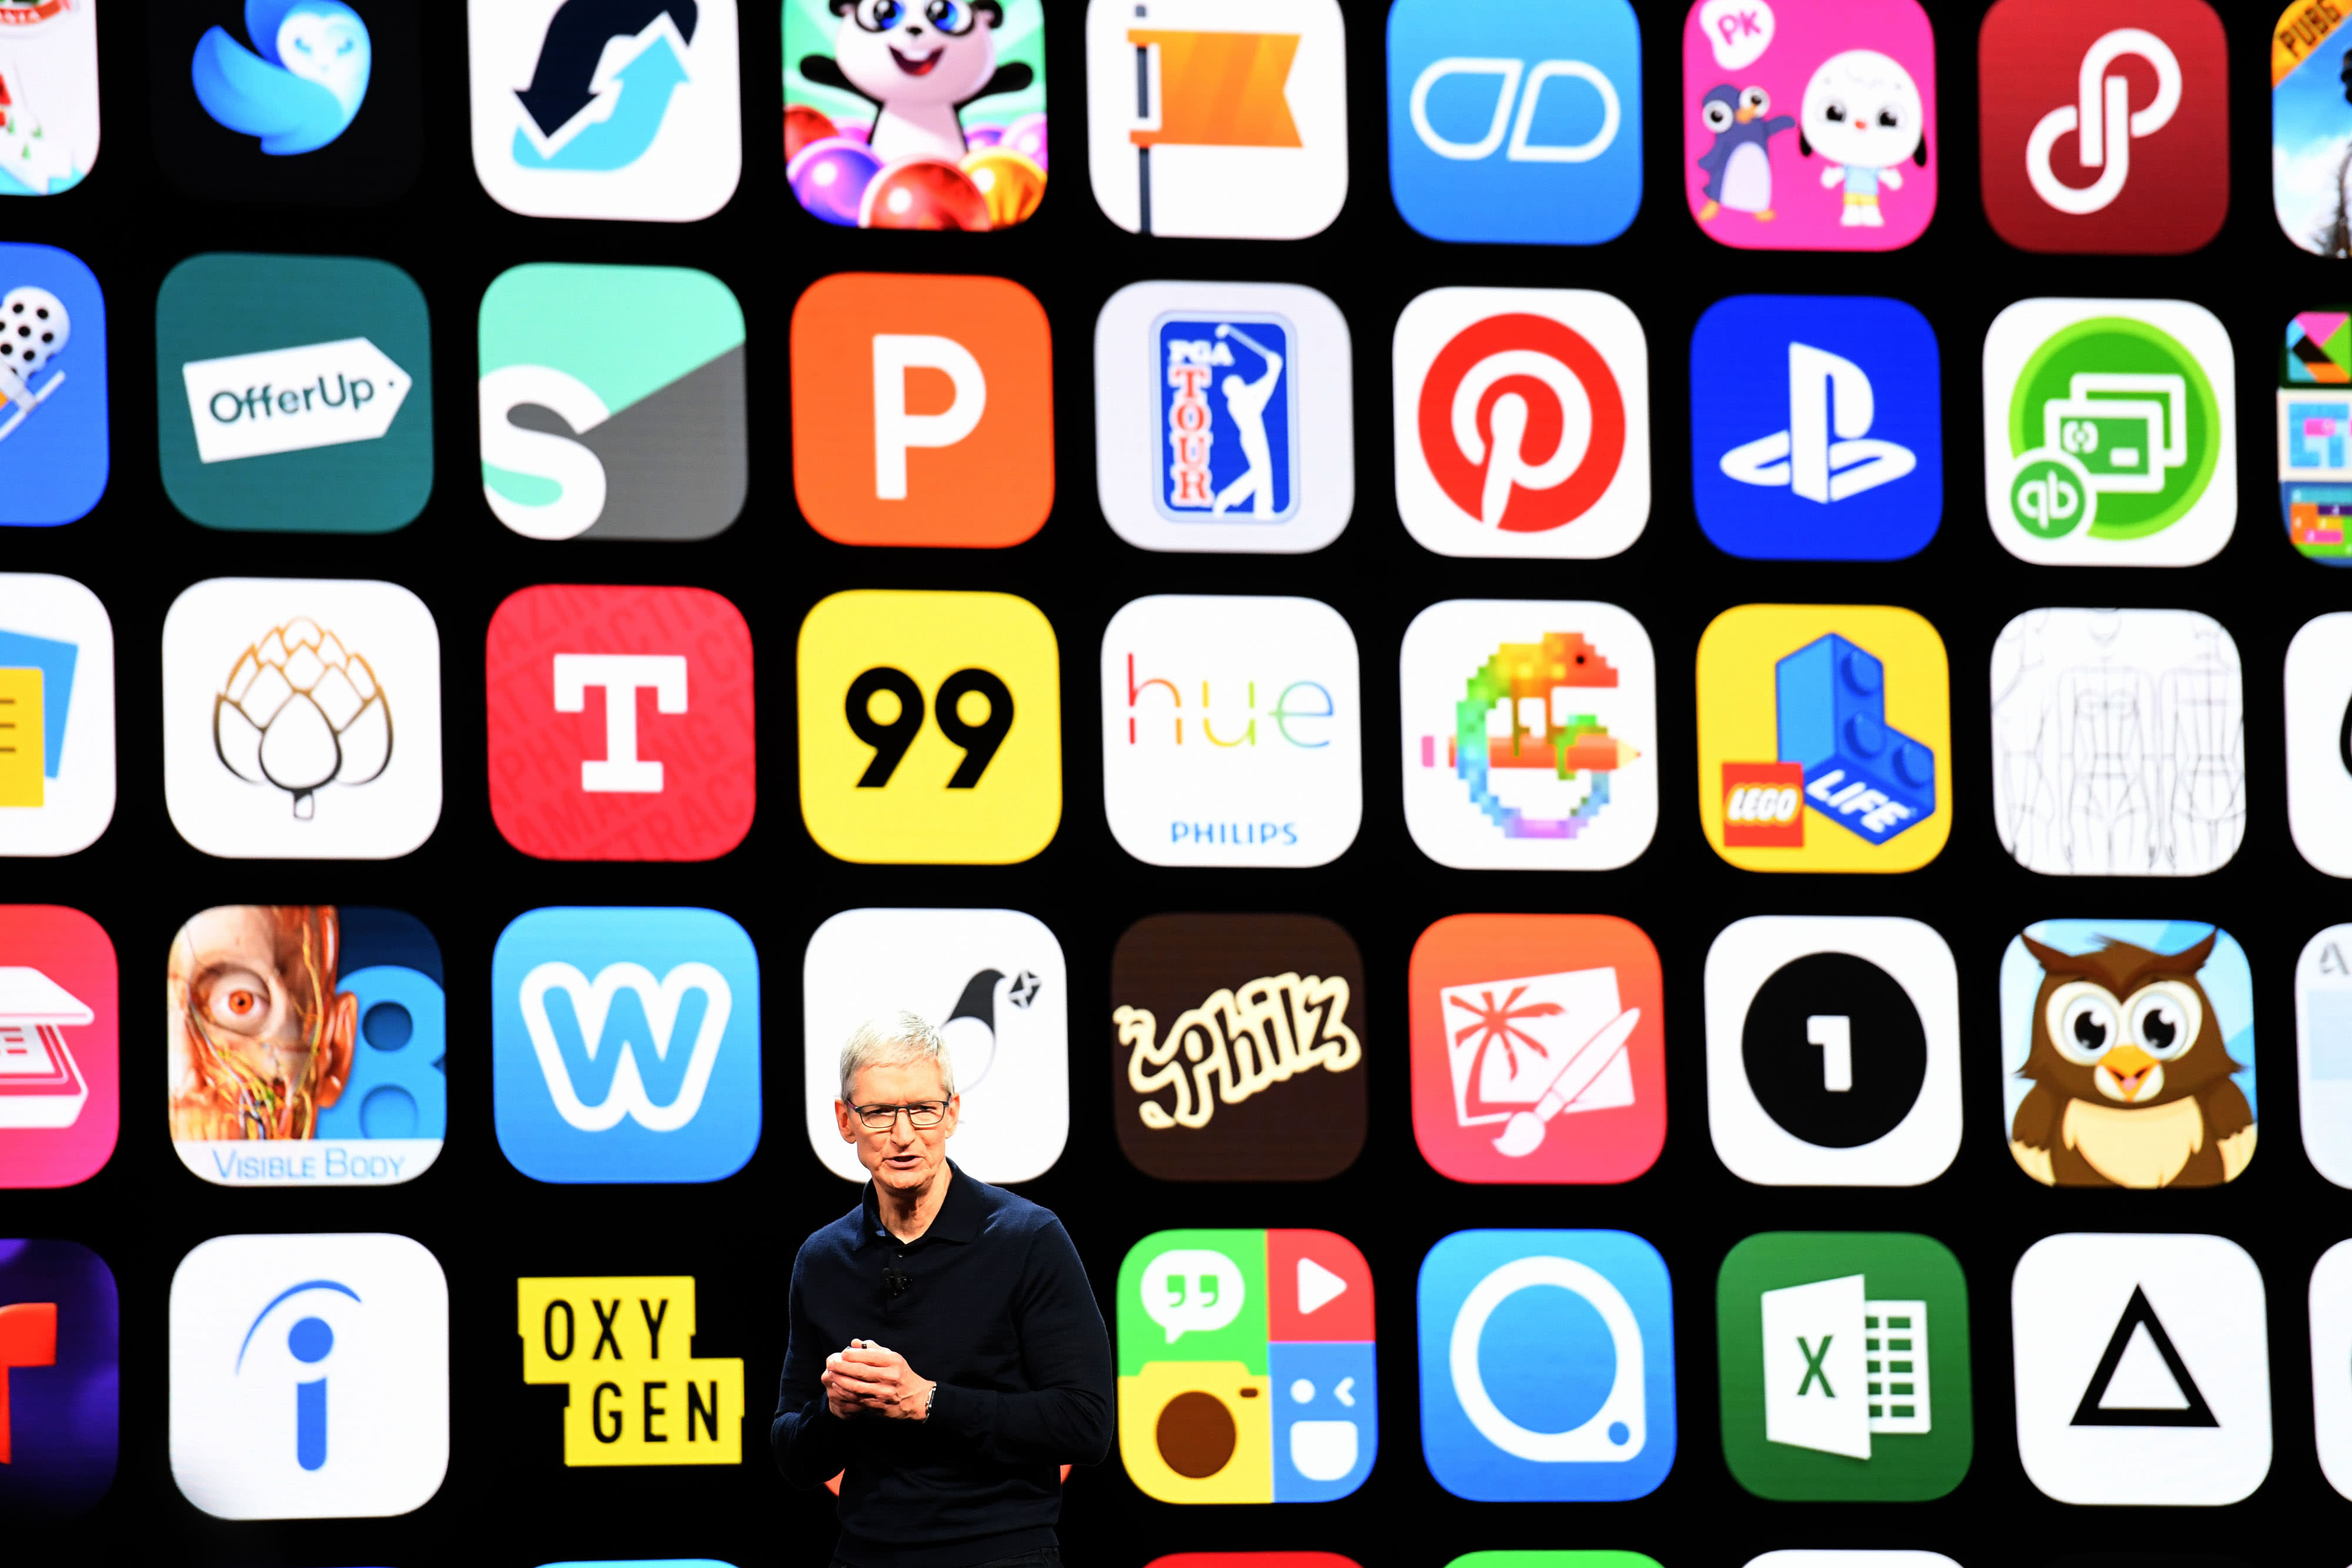 Apple's App Store had gross sales around $50 billion last year, but growth is slowing